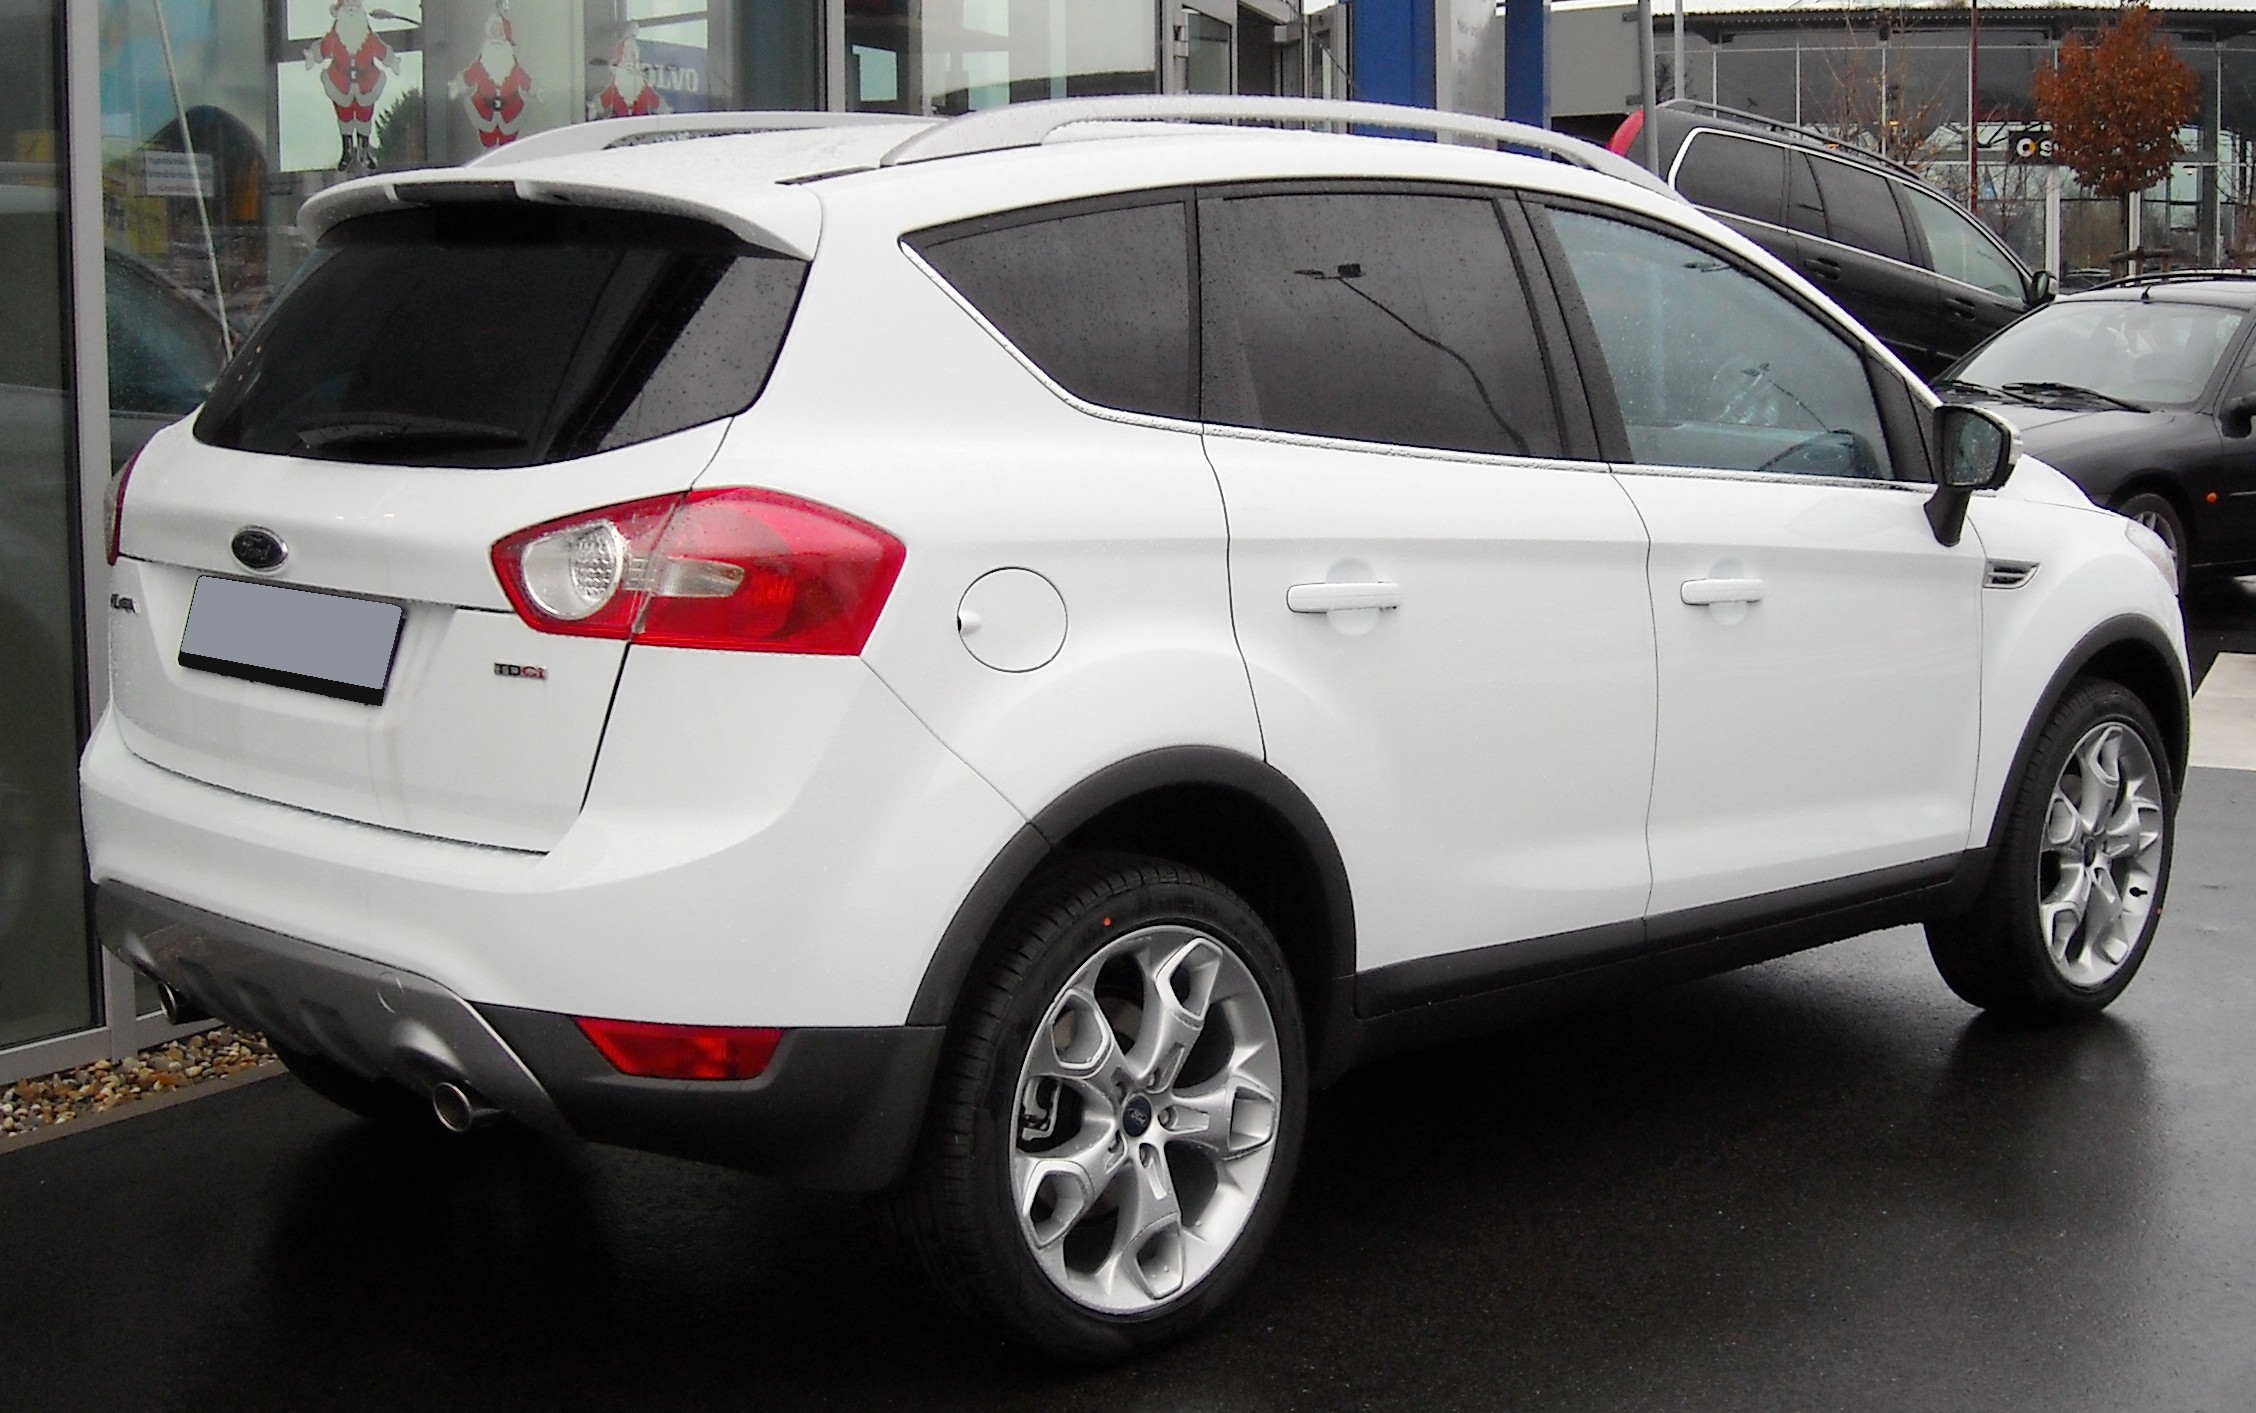 File Ford Kuga Rear 20081206 Jpg Wikimedia Commons